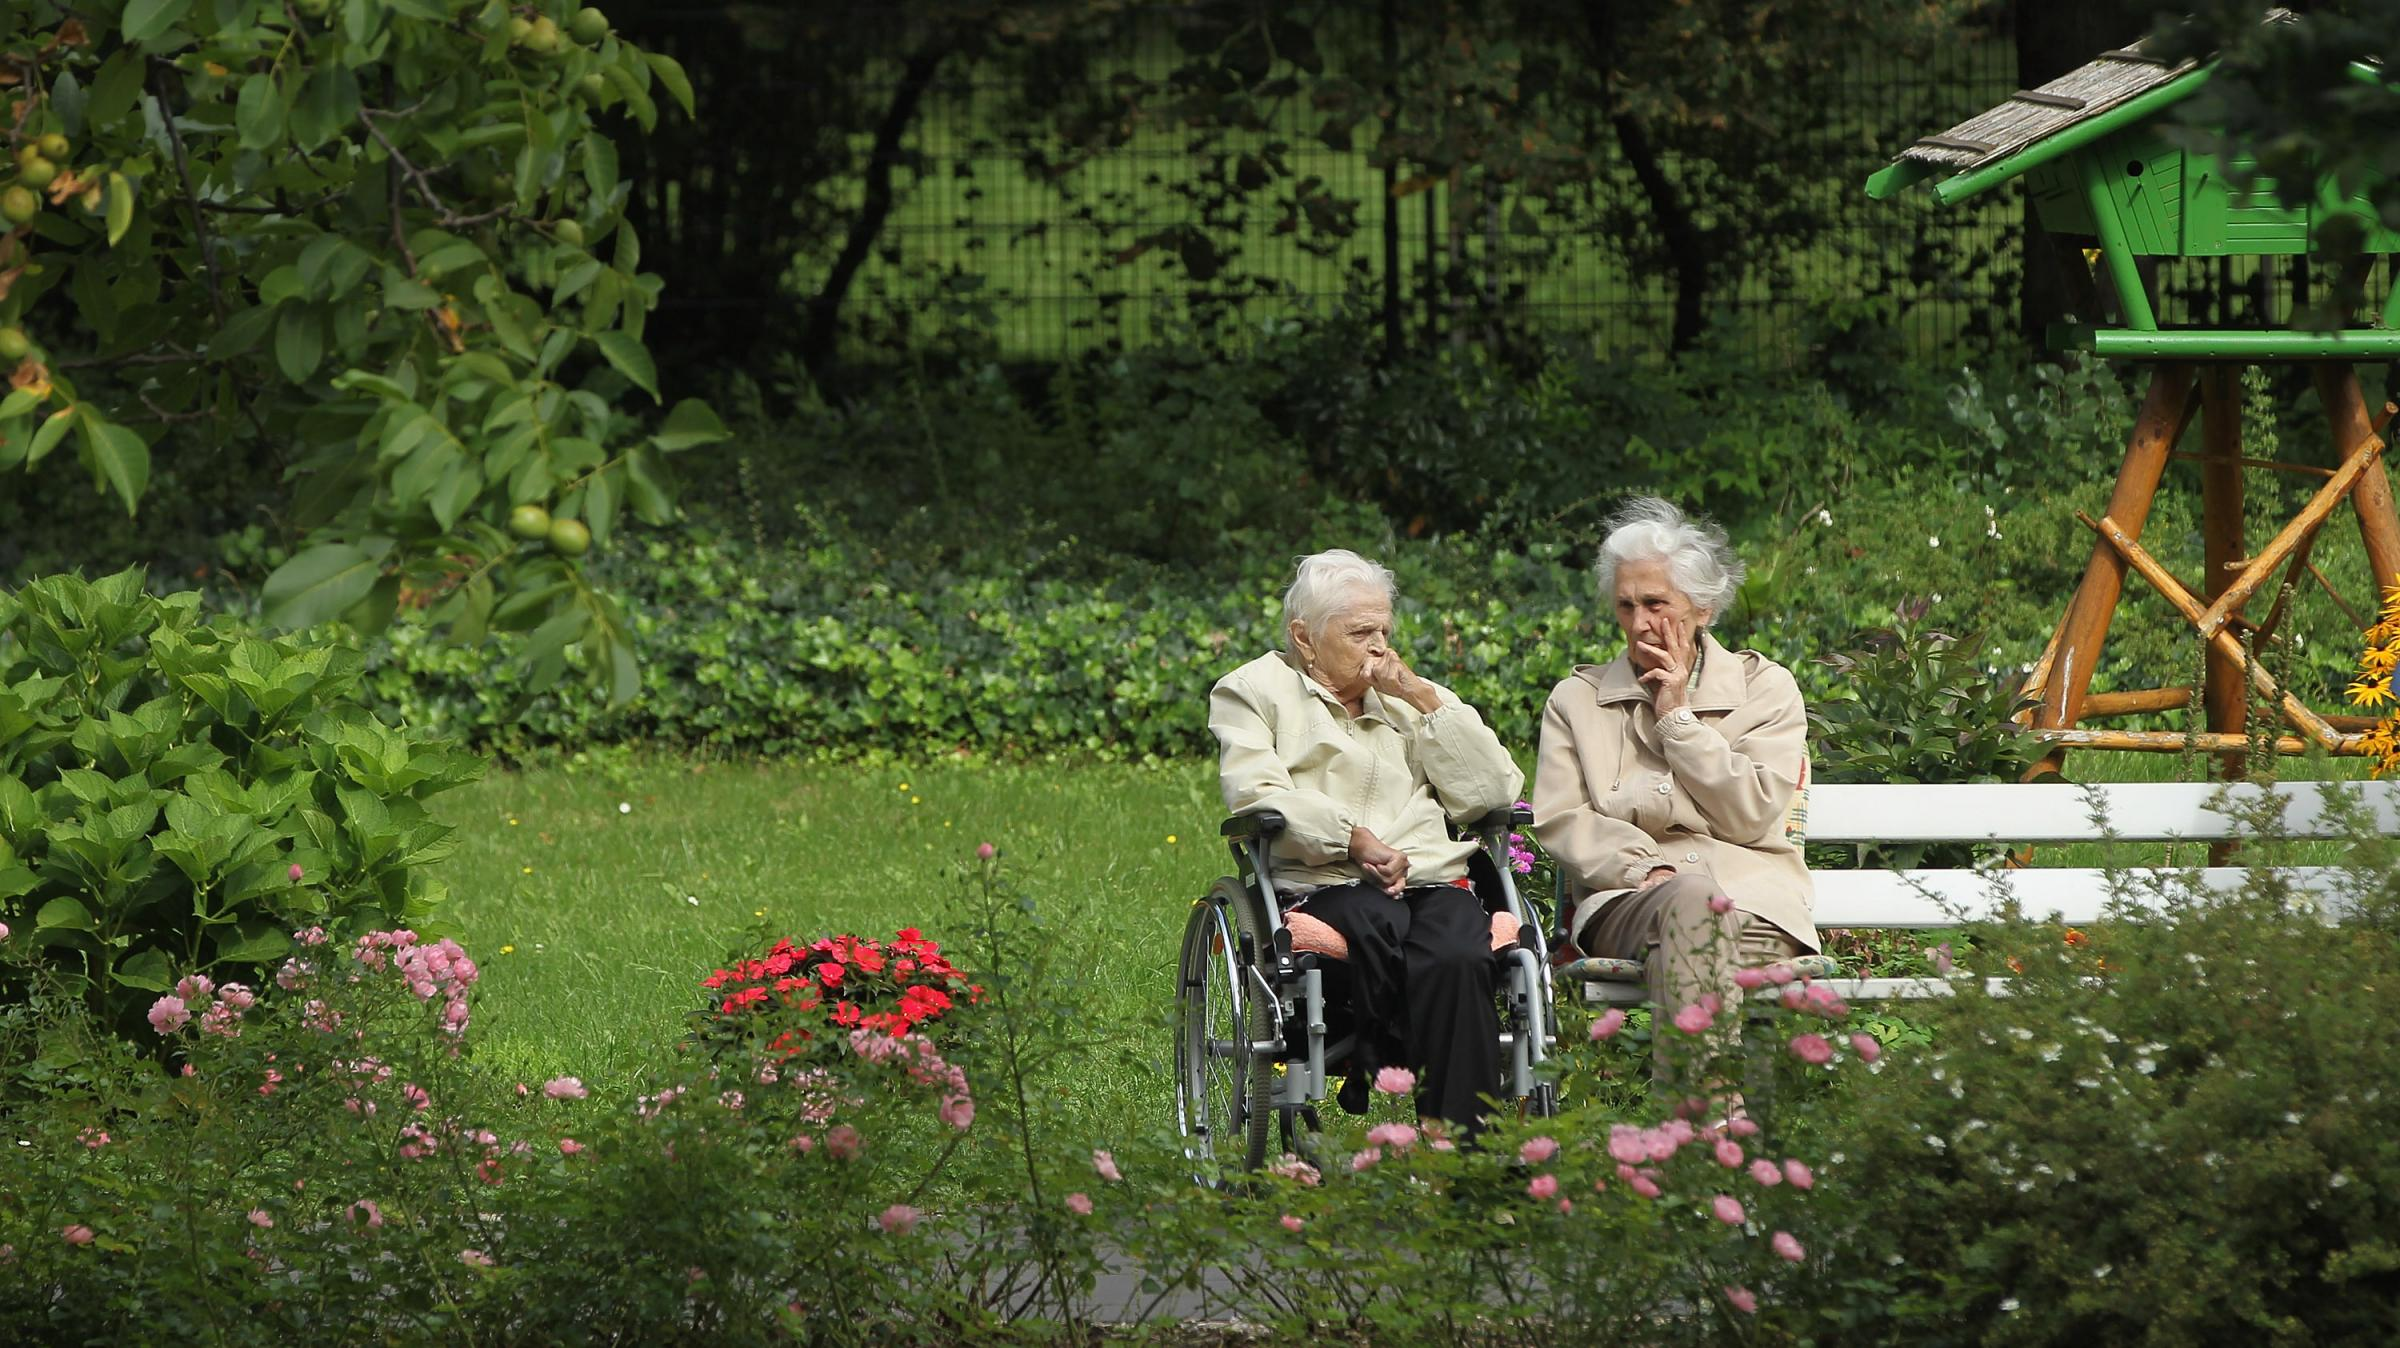 Two German Women Chat In The Gardens Of A Senior Care Home In Berlin